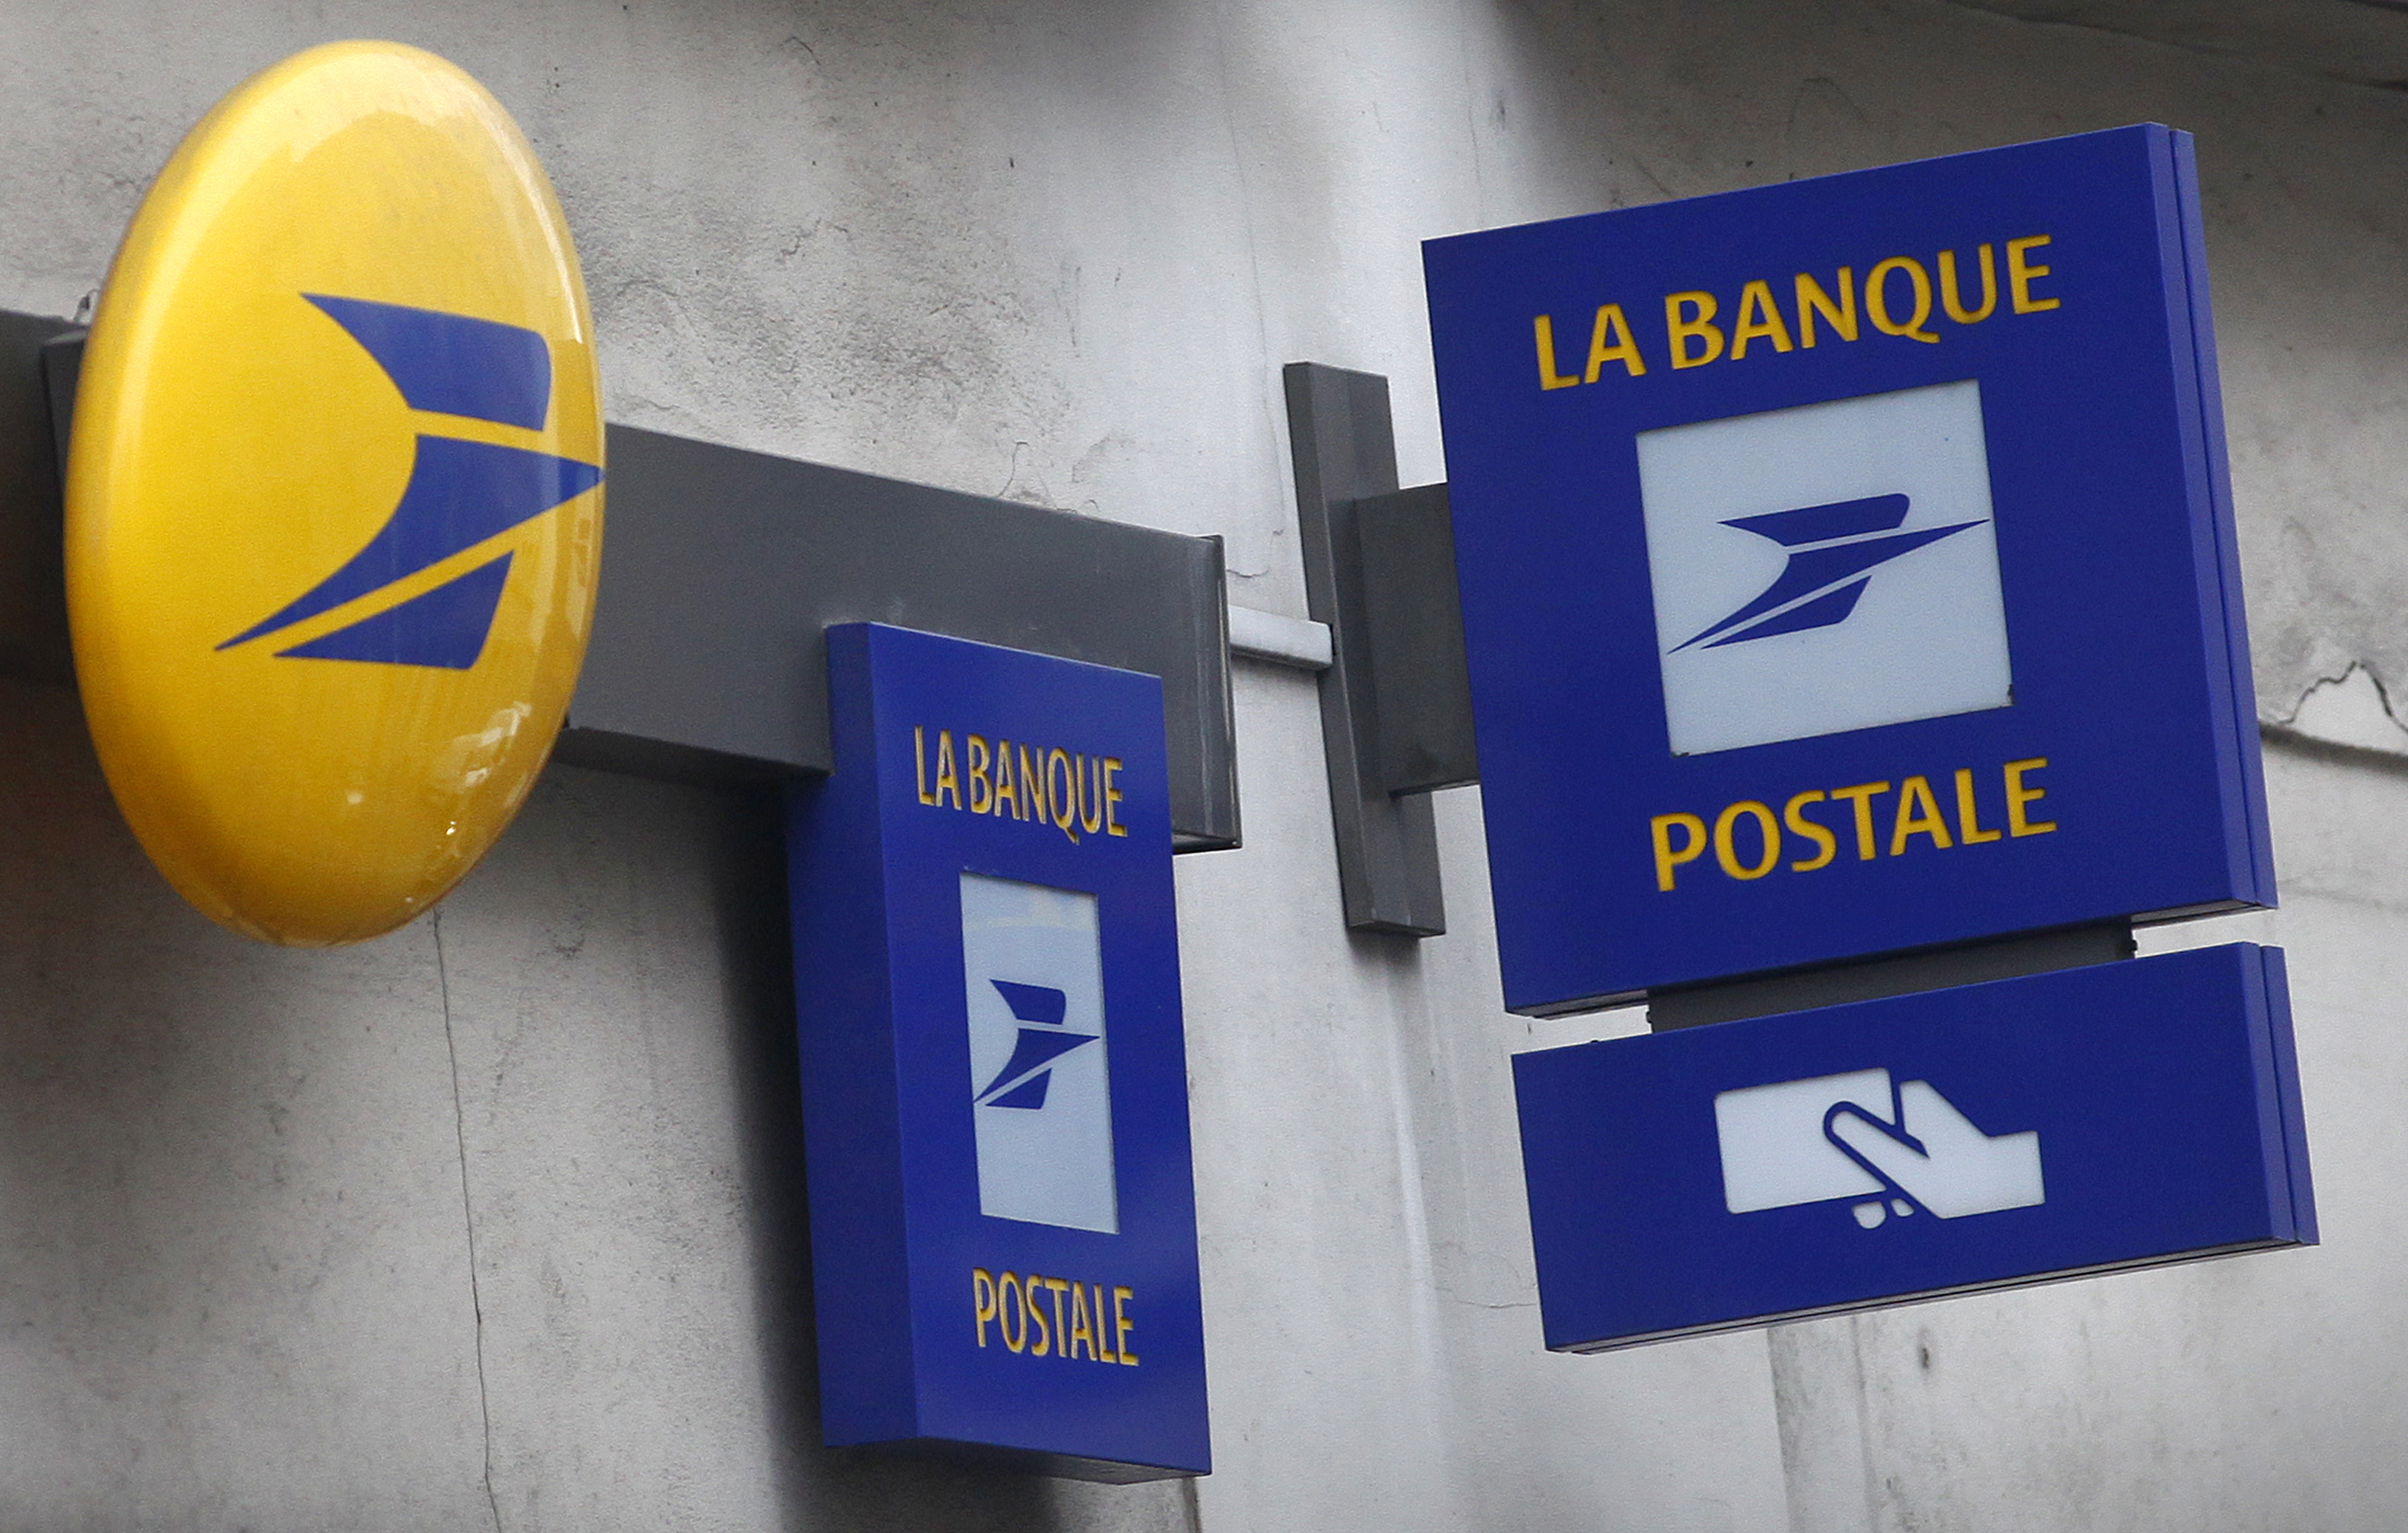 Signs for La Banque Postale, a French bank which is a subsidiary of the national postal service,  La Poste, are seen outside a Post office in Paris, March 1, 2016.   REUTERS/Mal Langsdon